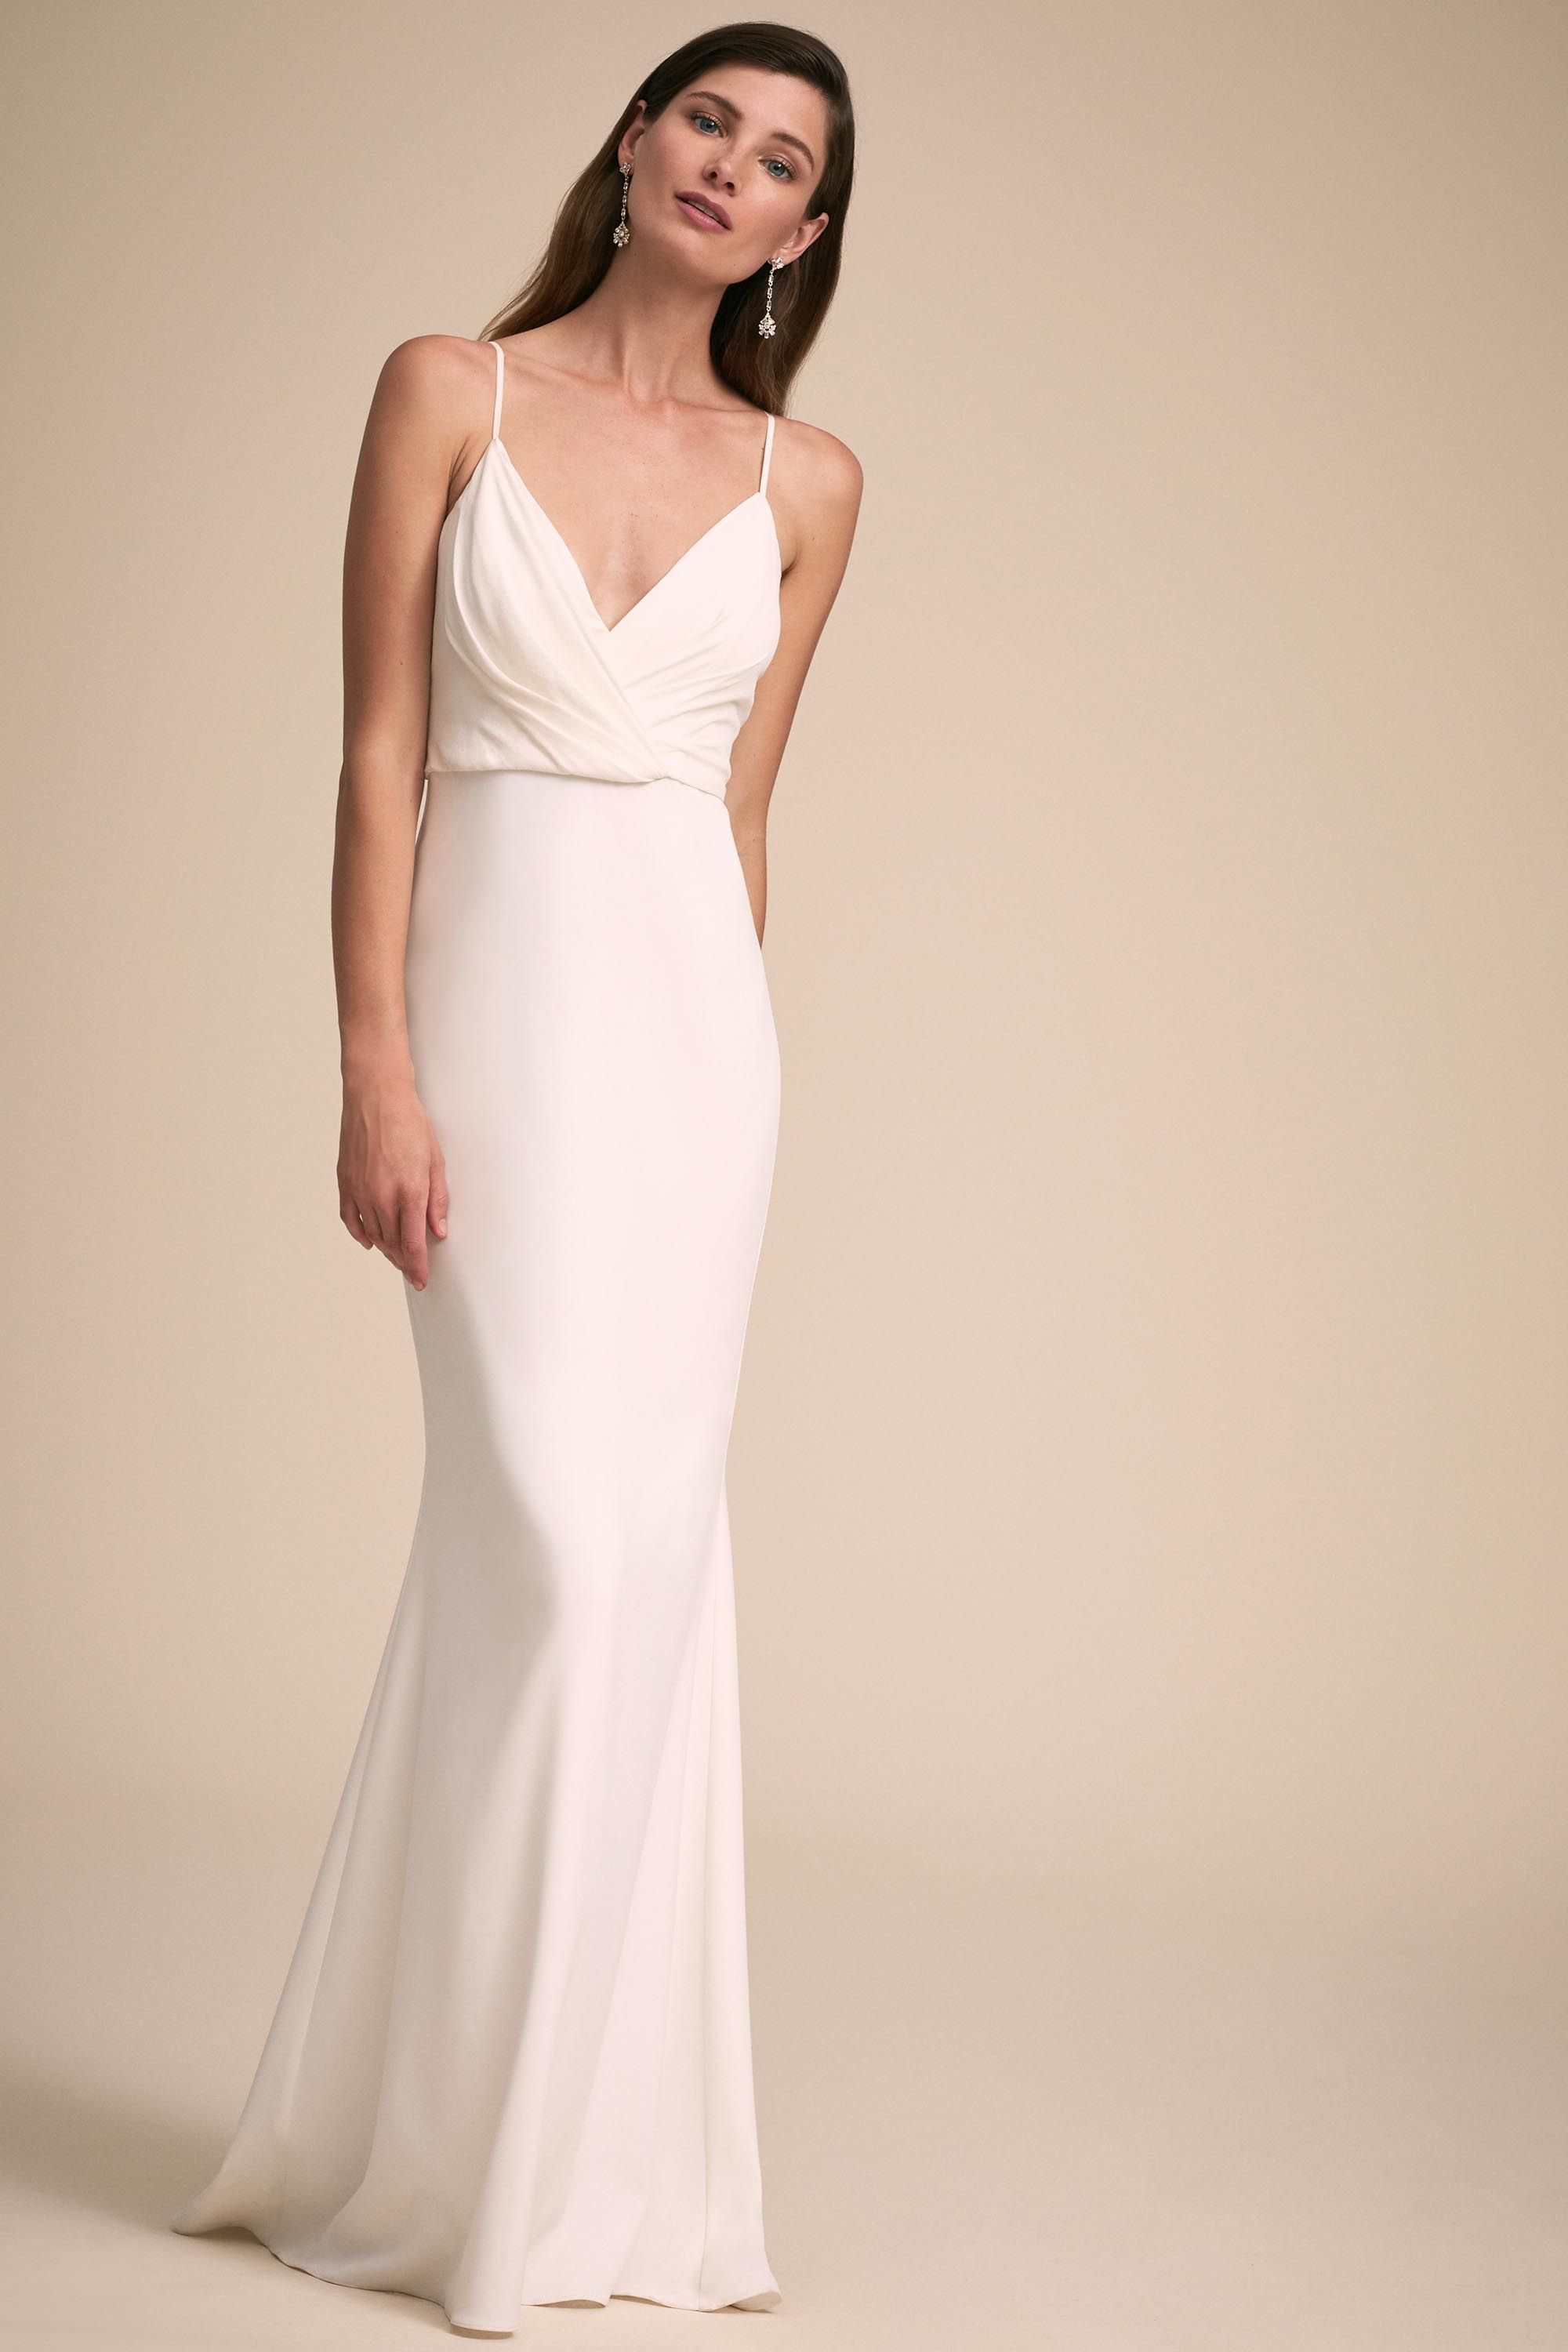 At last gown from bhldn the minimalist bride pinterest